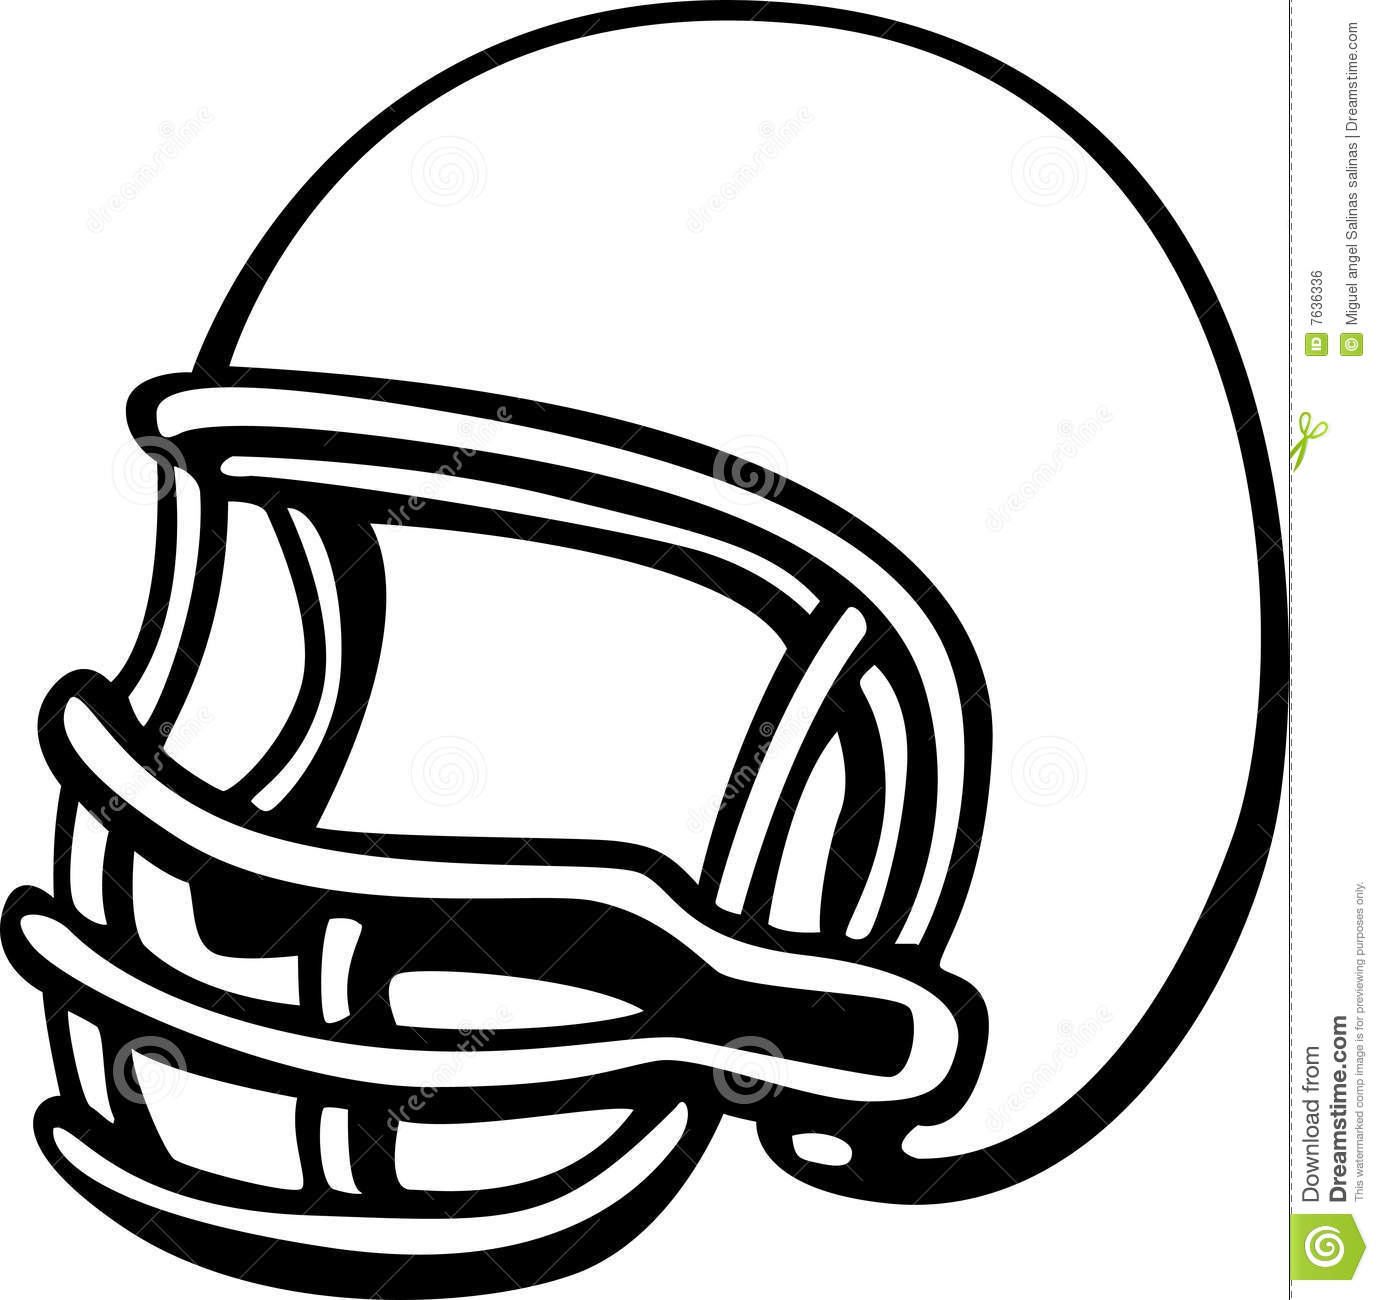 football clipart black and white clipart panda free clipart images rh clipartpanda com free football clipart black and white